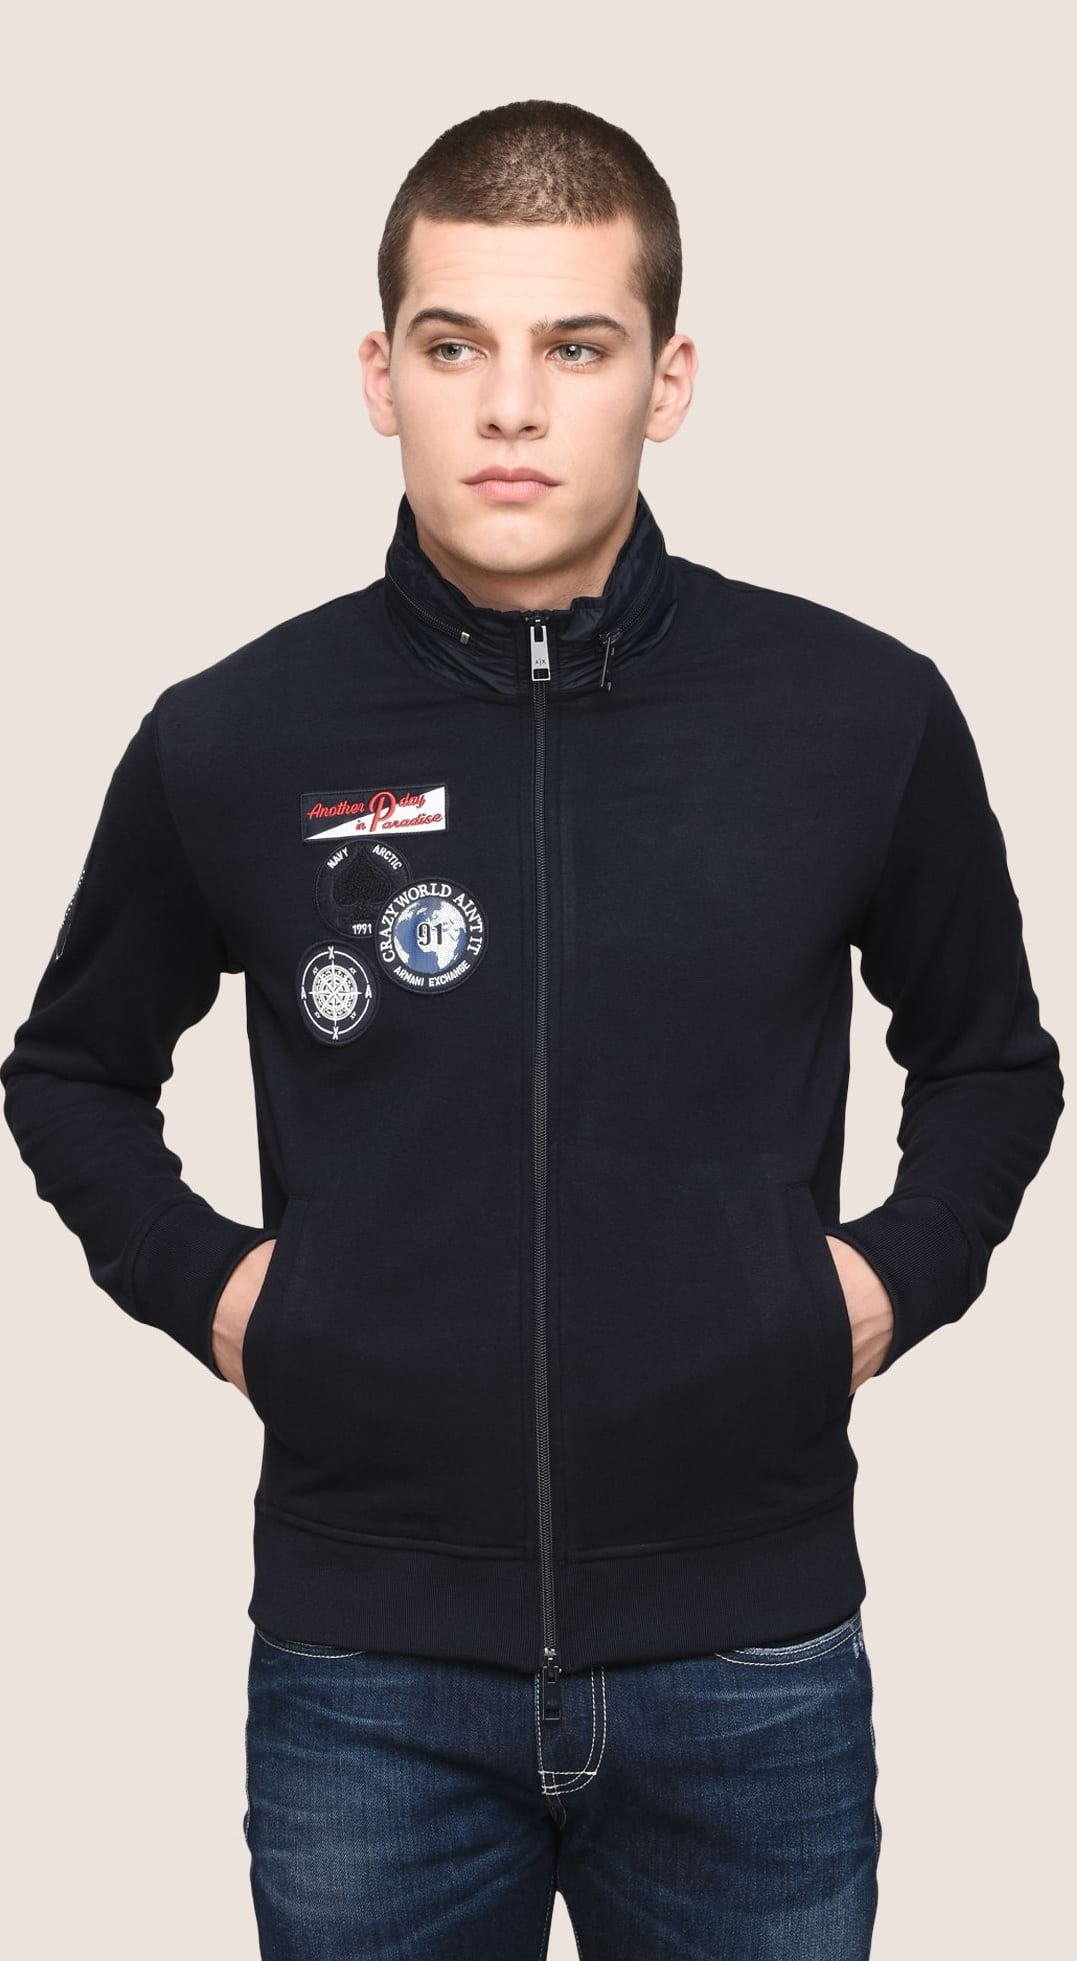 Track Jacket Patch Outfit For Men